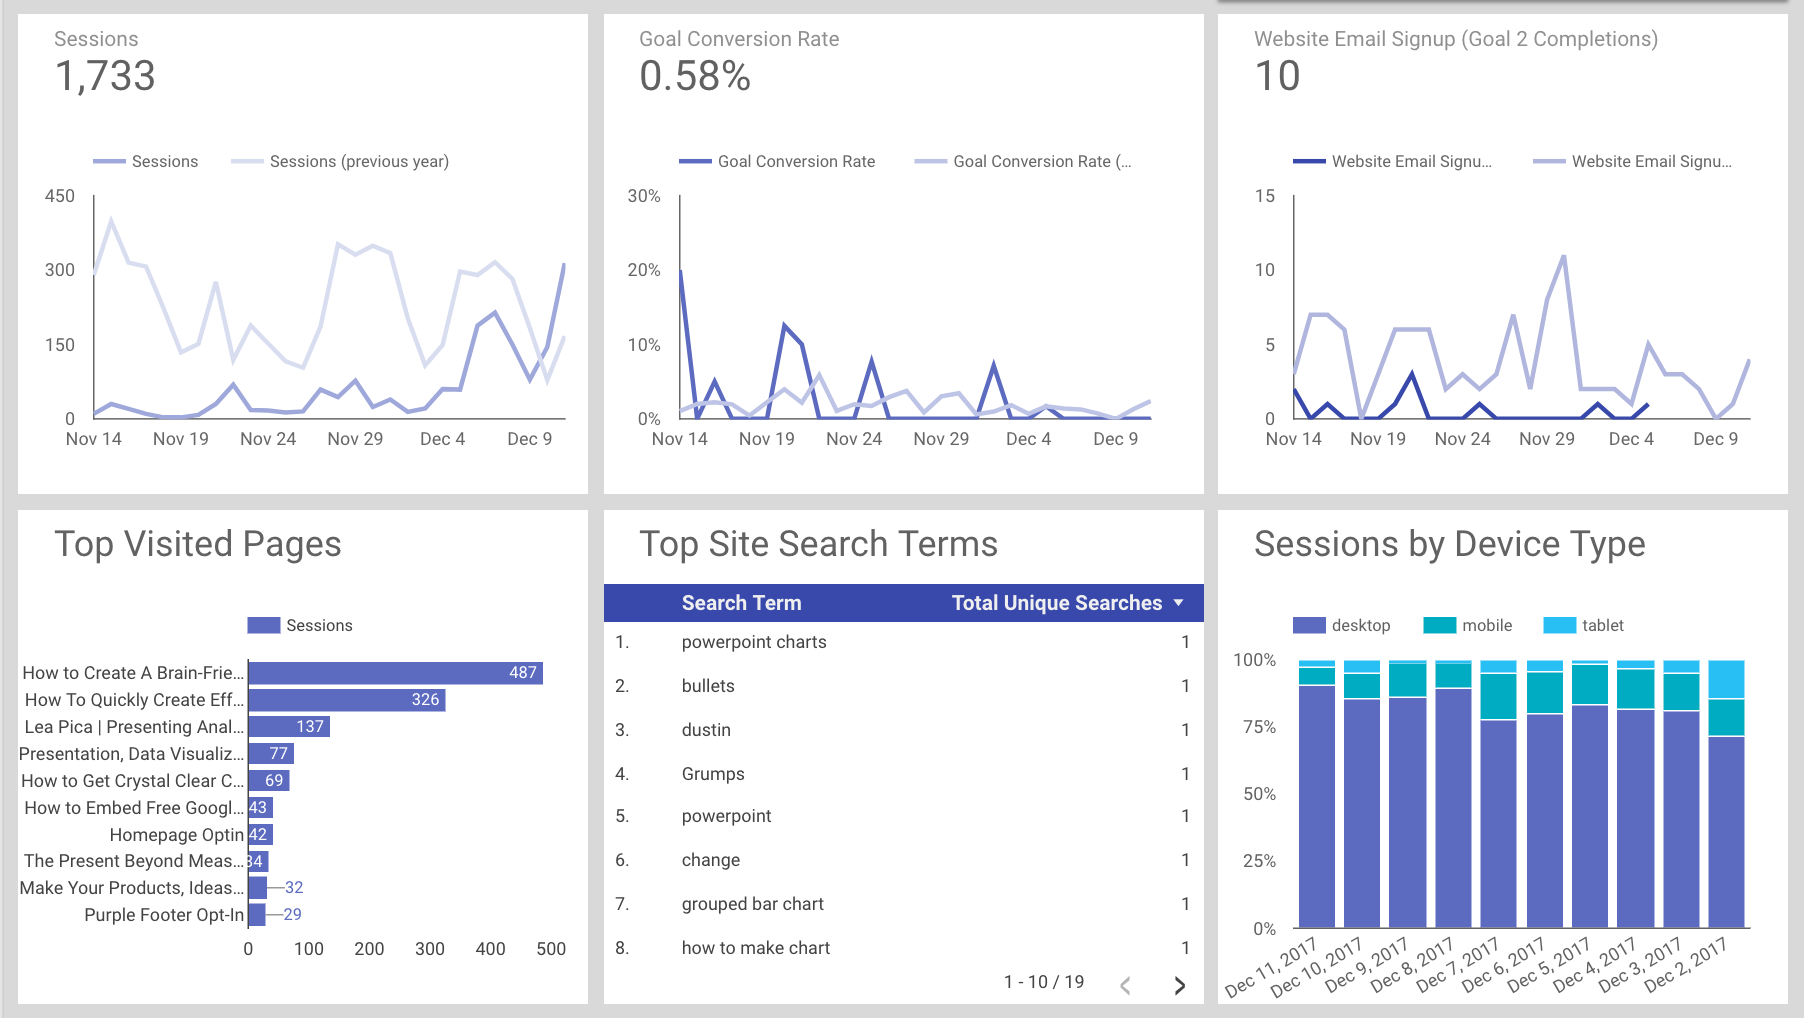 11 Analytics Experts Share Their Favorite New Features of GA